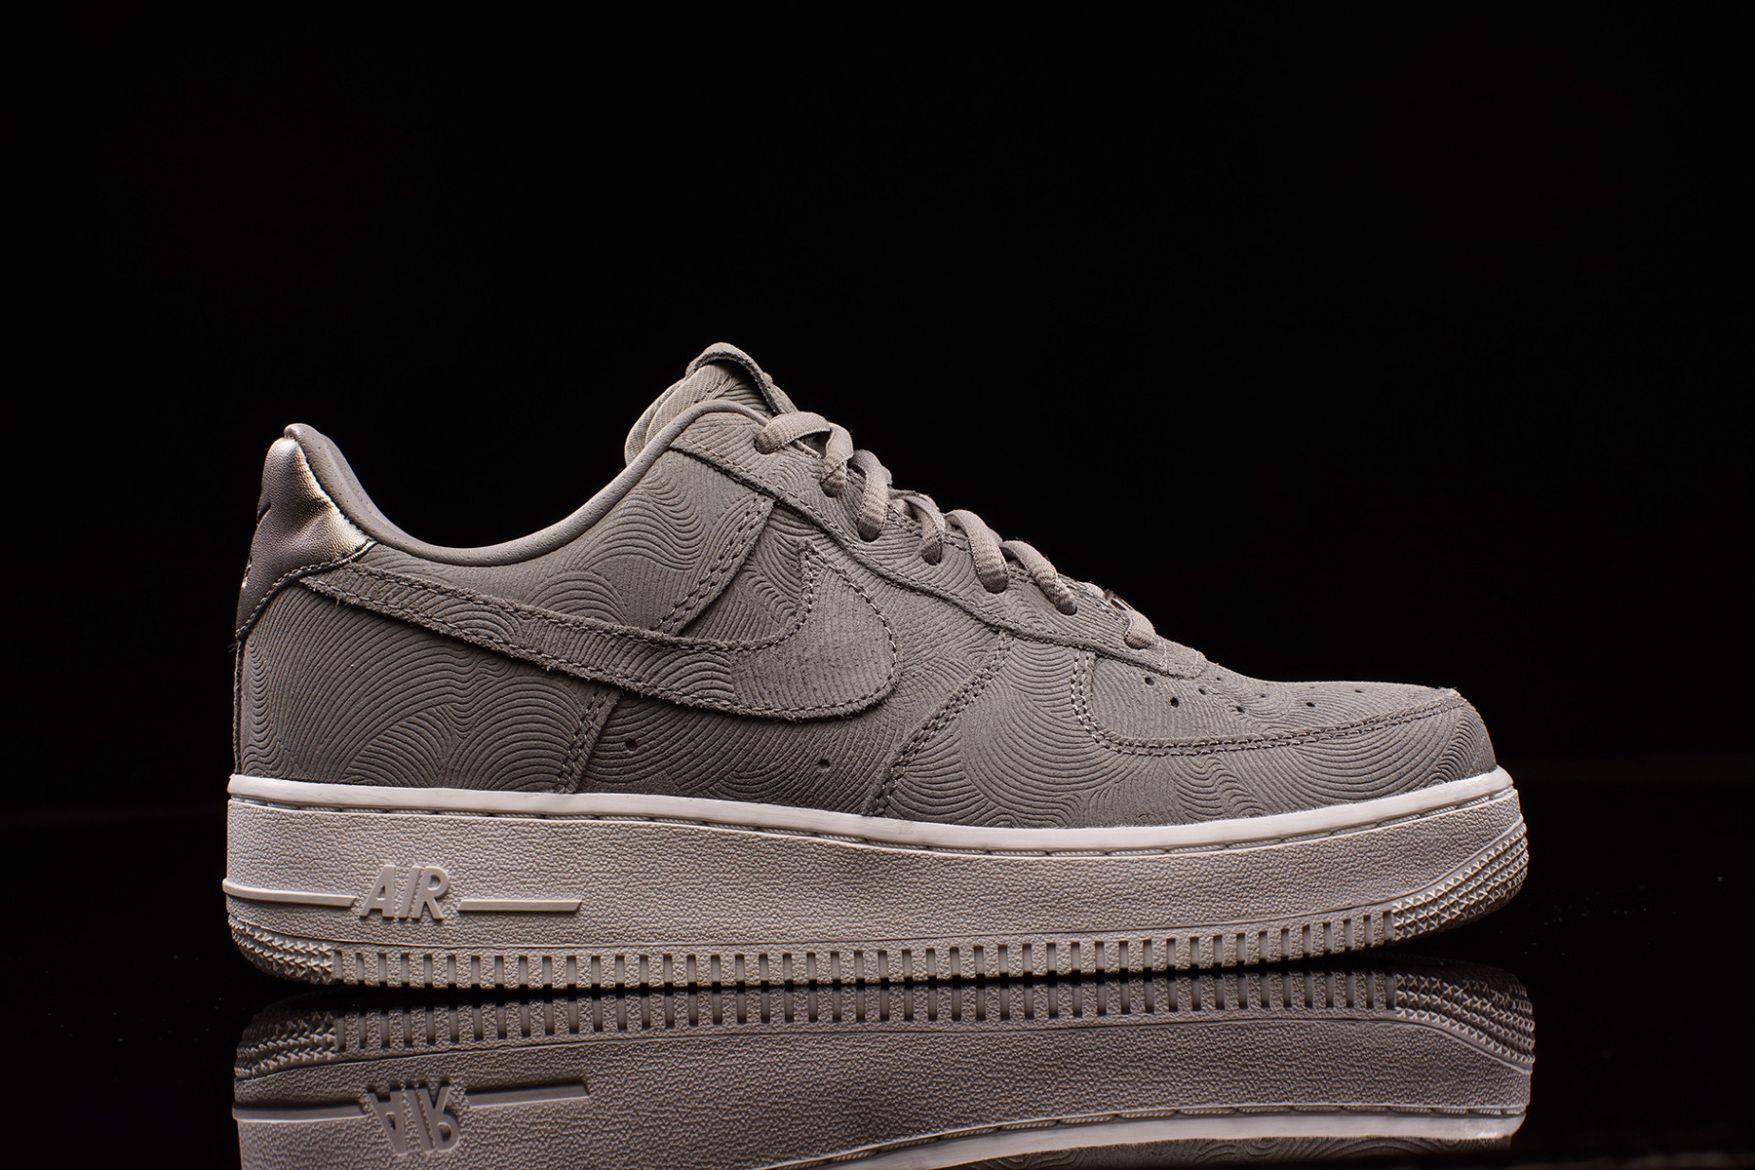 timeless design aa2e3 c1d0e Sneakers femme - Nike Drops New Air Force 1 Low in Premium Suede Just for  the Ladies